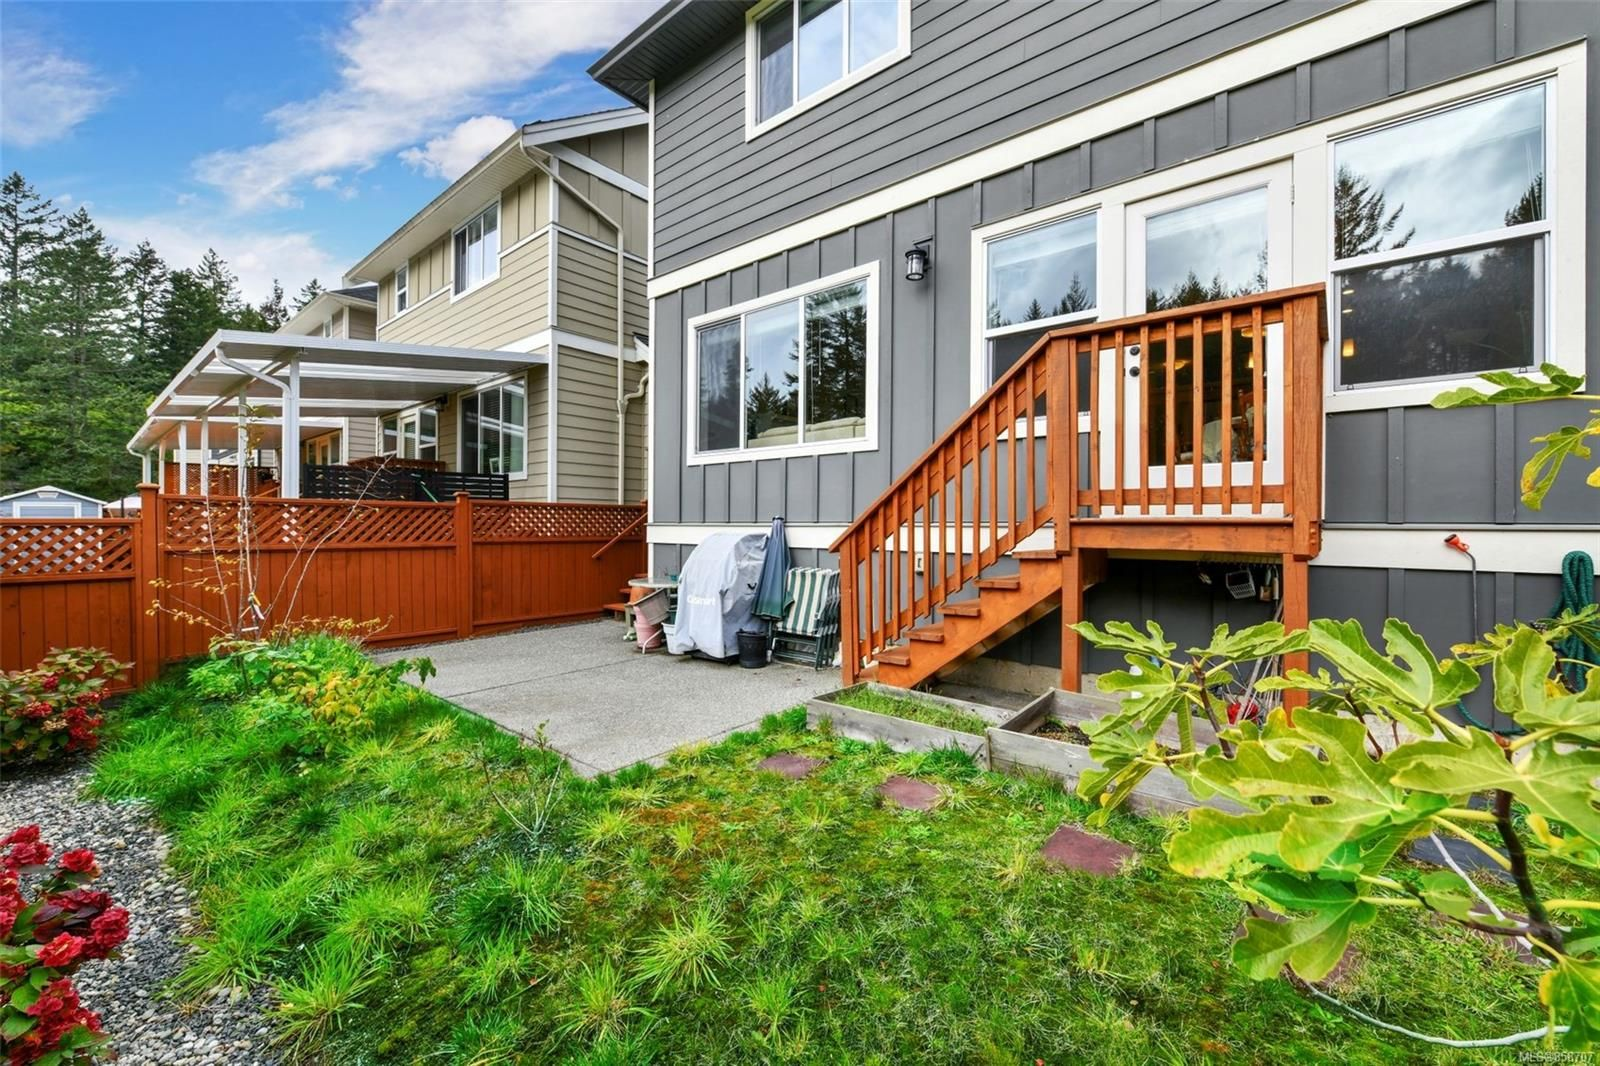 Photo 23: Photos: 1262 McLeod Pl in : La Happy Valley House for sale (Langford)  : MLS®# 858707